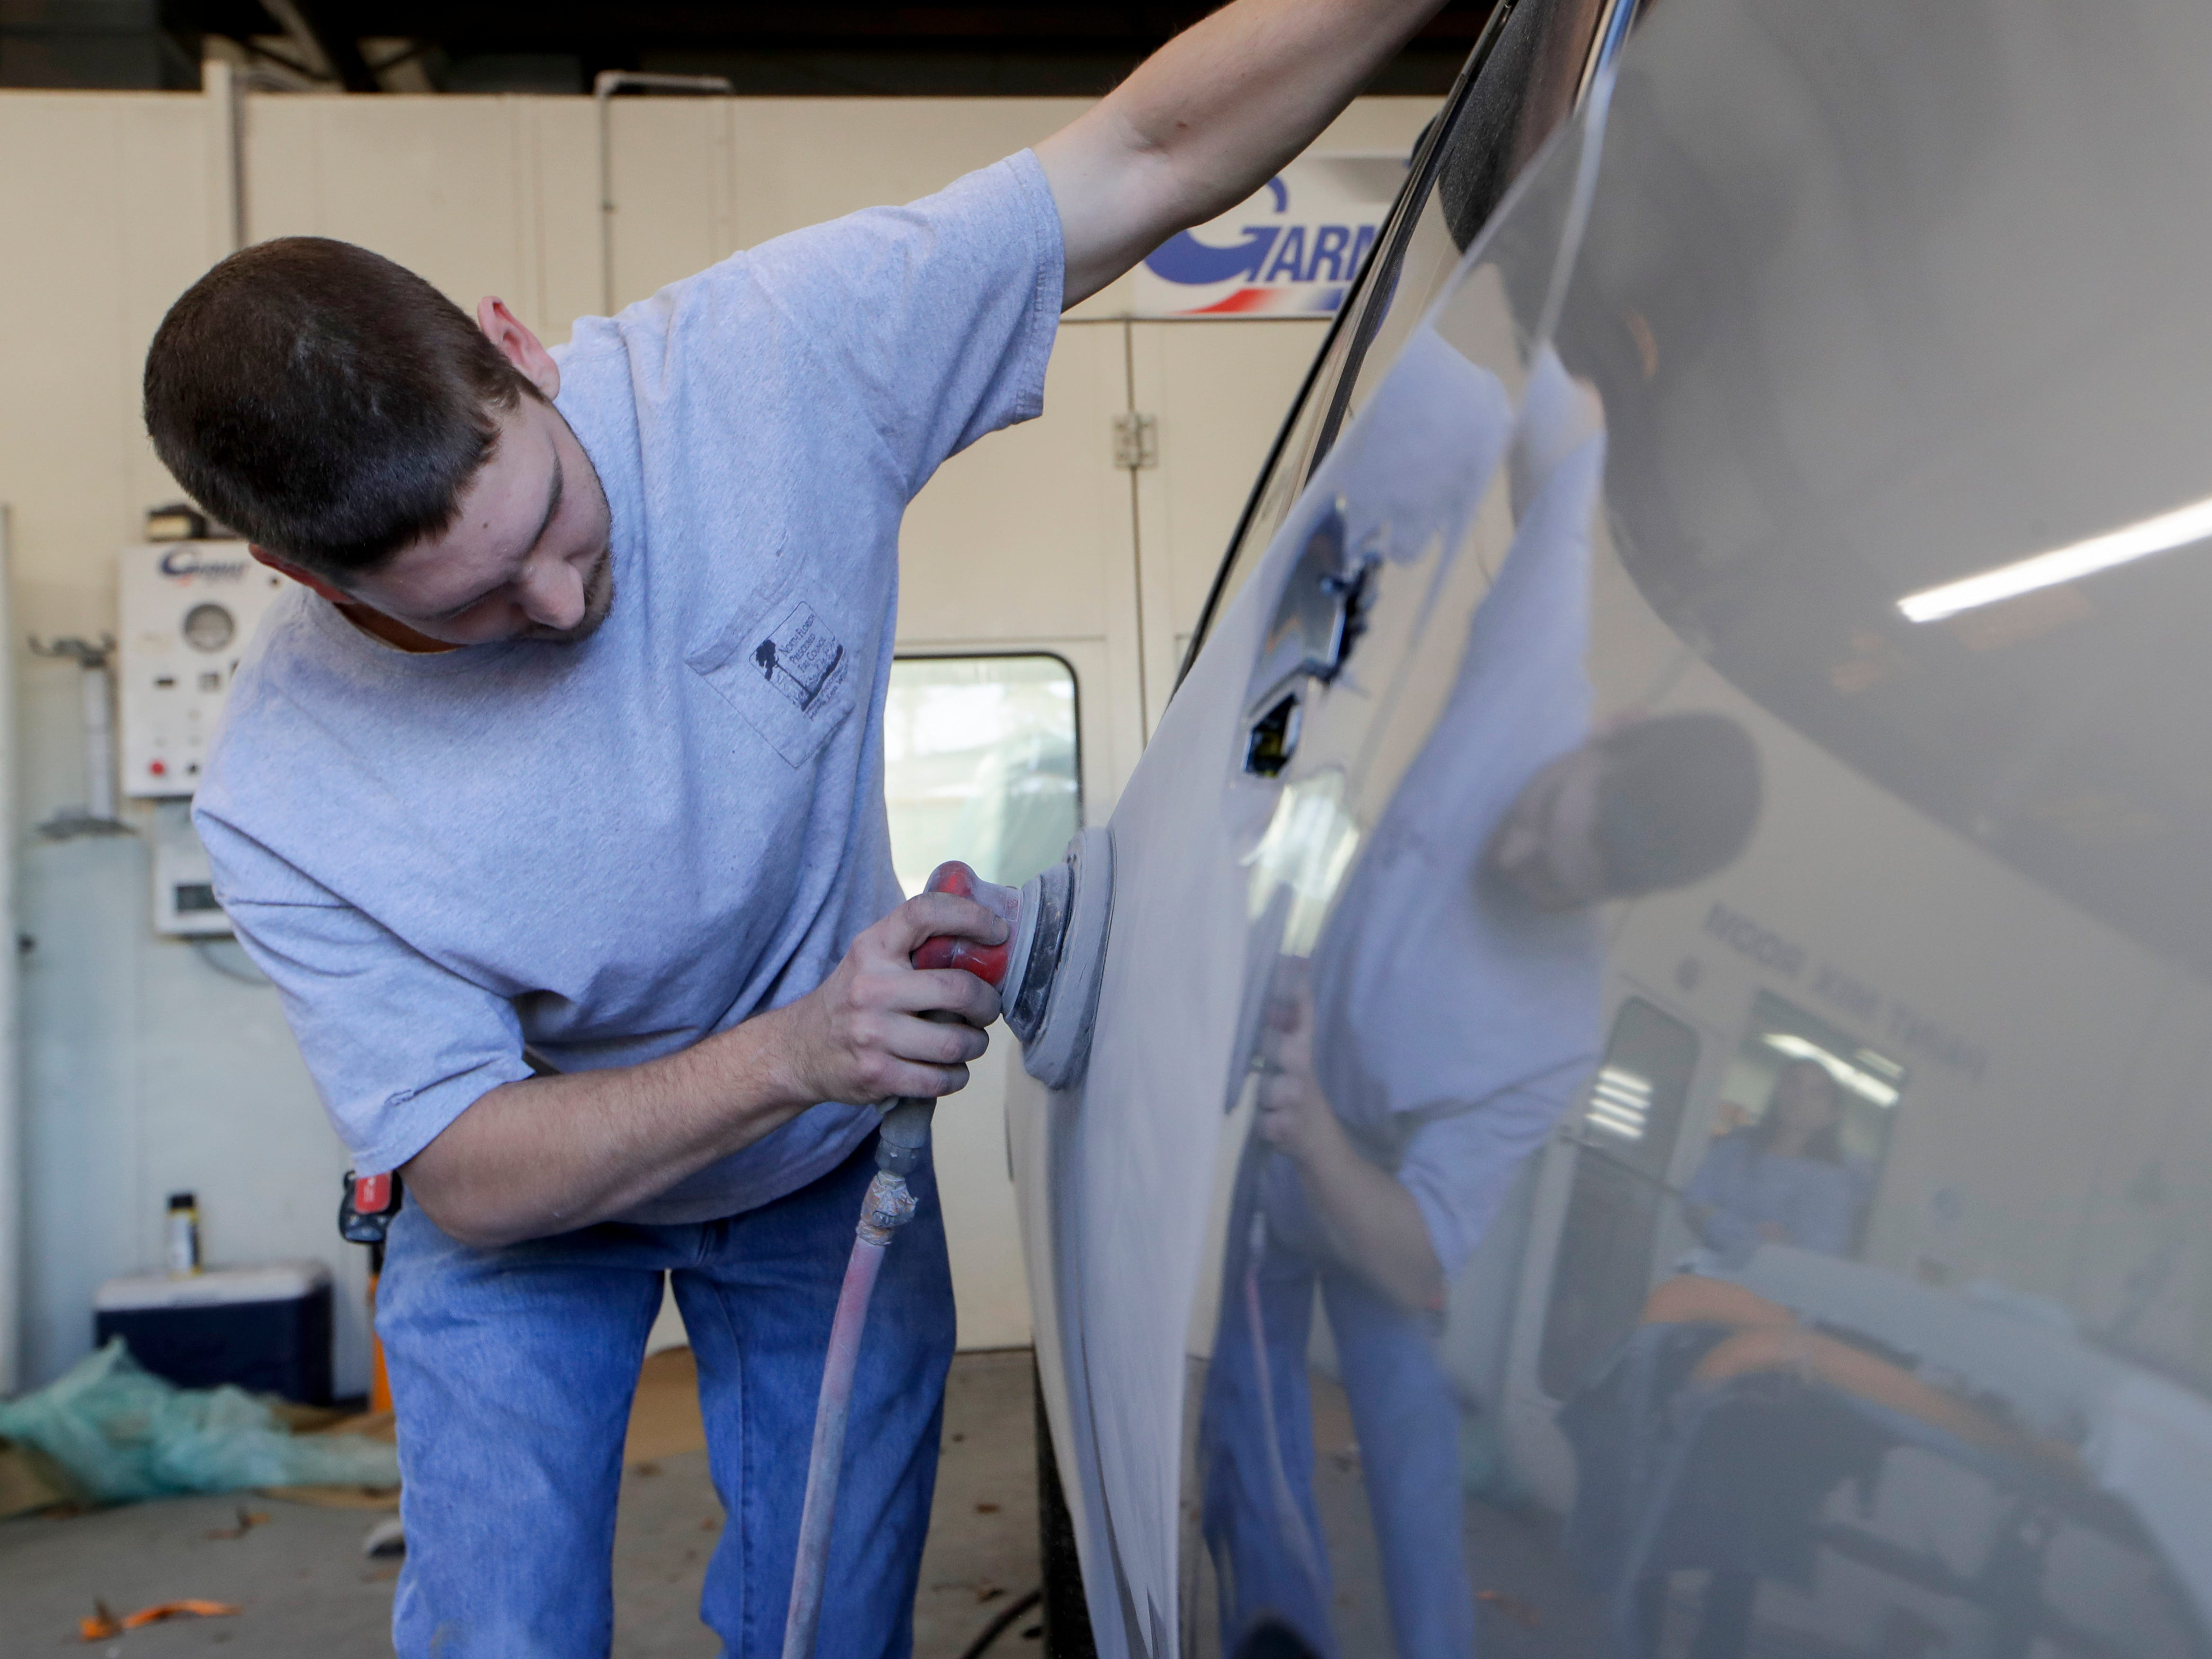 Body Builders Paint and Body Inc. paint prepper Christopher Roskowski sands down the paint on a Subaru that was brought to the body shop by a woman from Pensacola following Hurricane Michael after she was unable to find anyone there that could repair her vehicle.